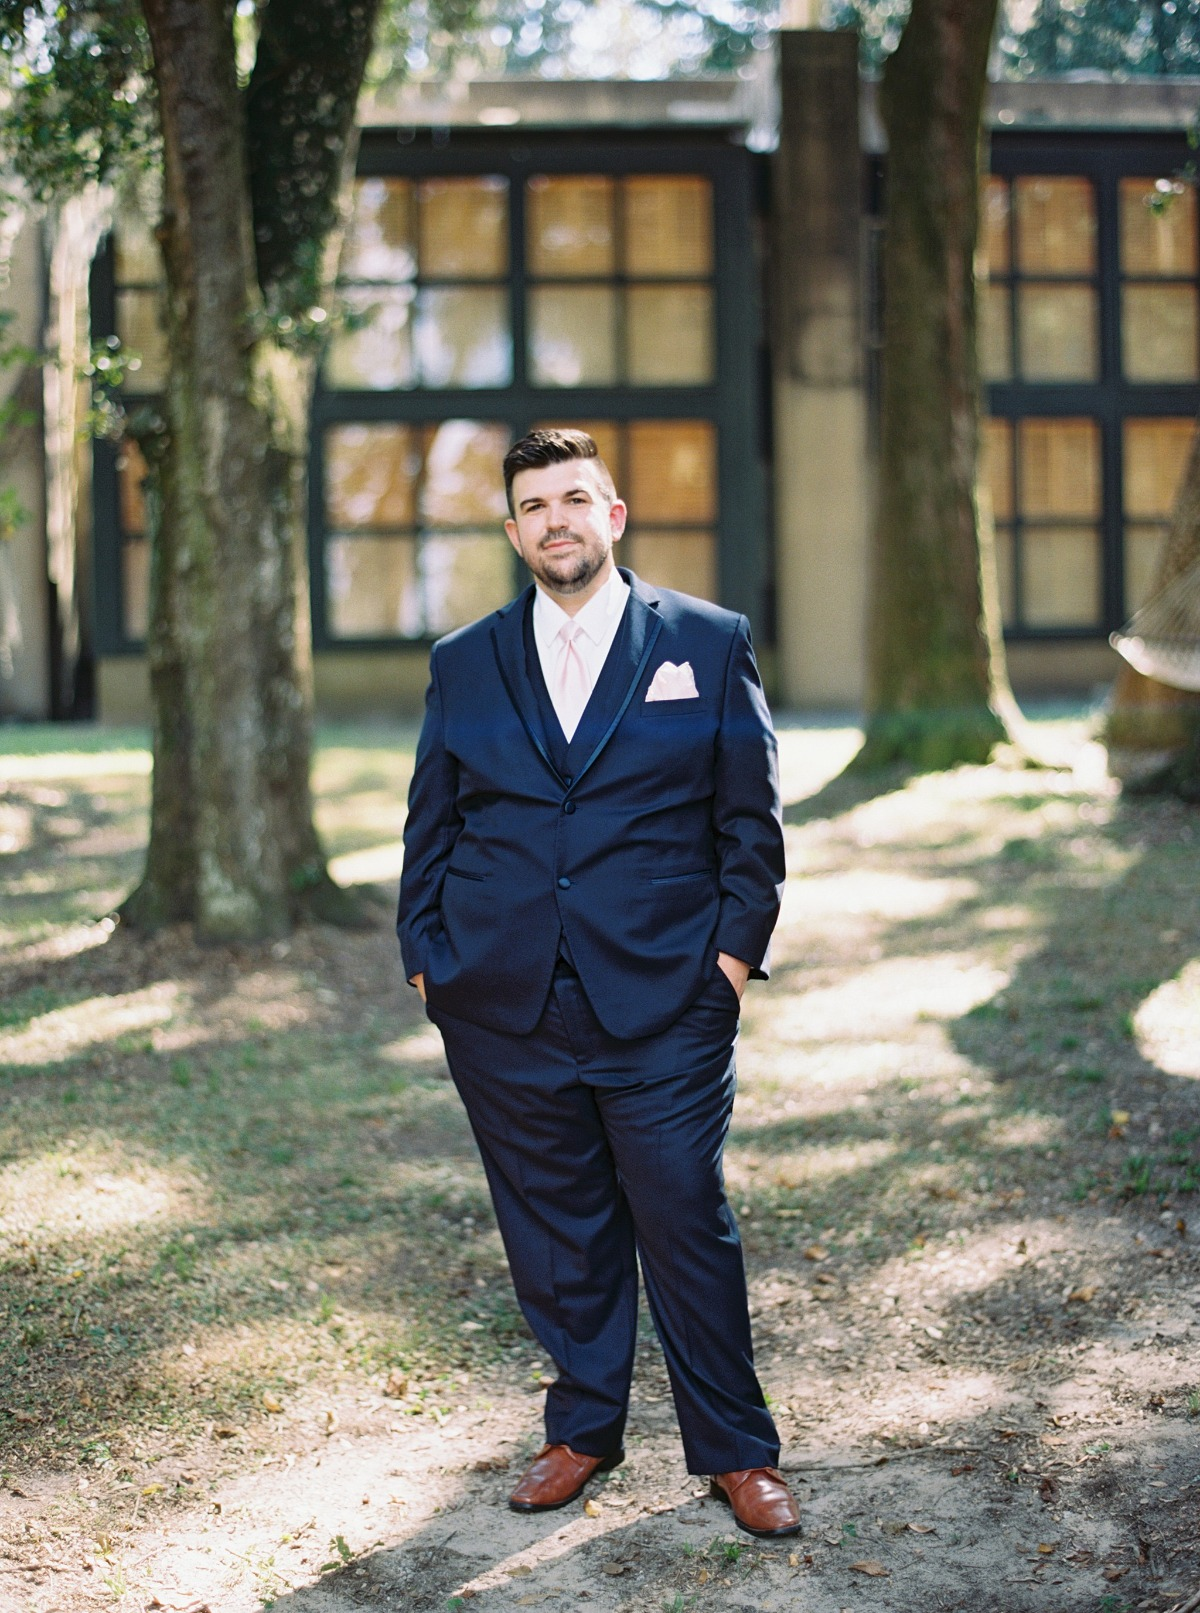 Navy blue suit for the groom